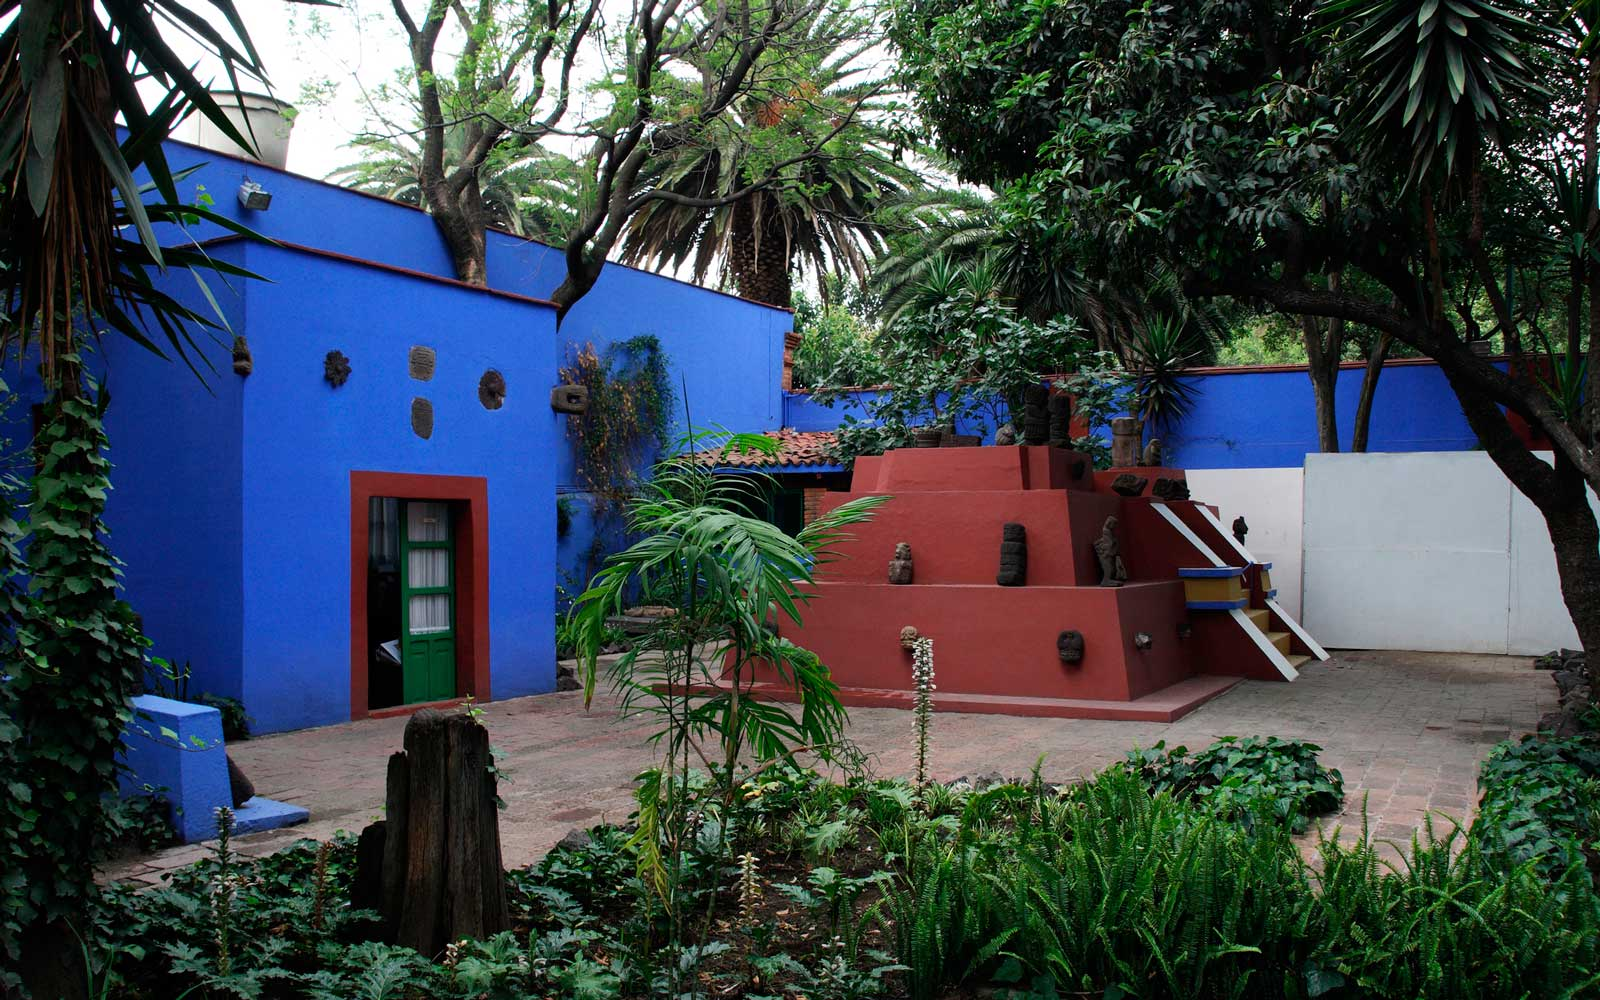 Frida Kahlo's Mexico City